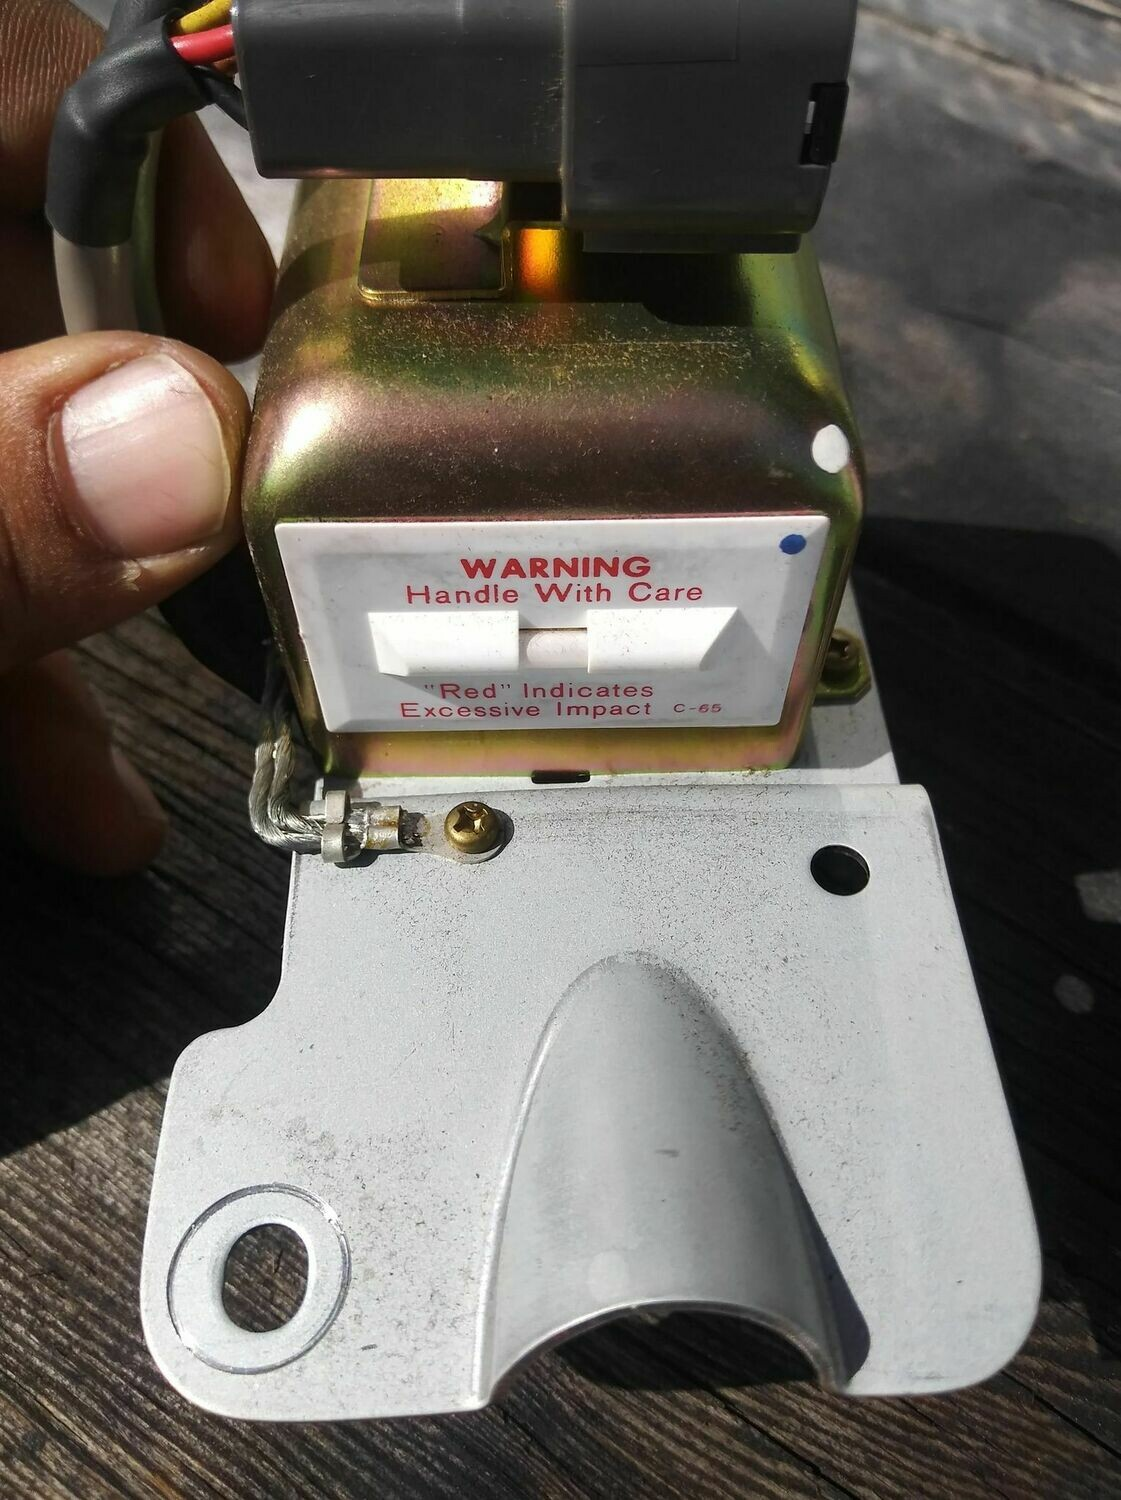 Used, excellent condition OEM R32 GTS-4/GTR G-Sensor